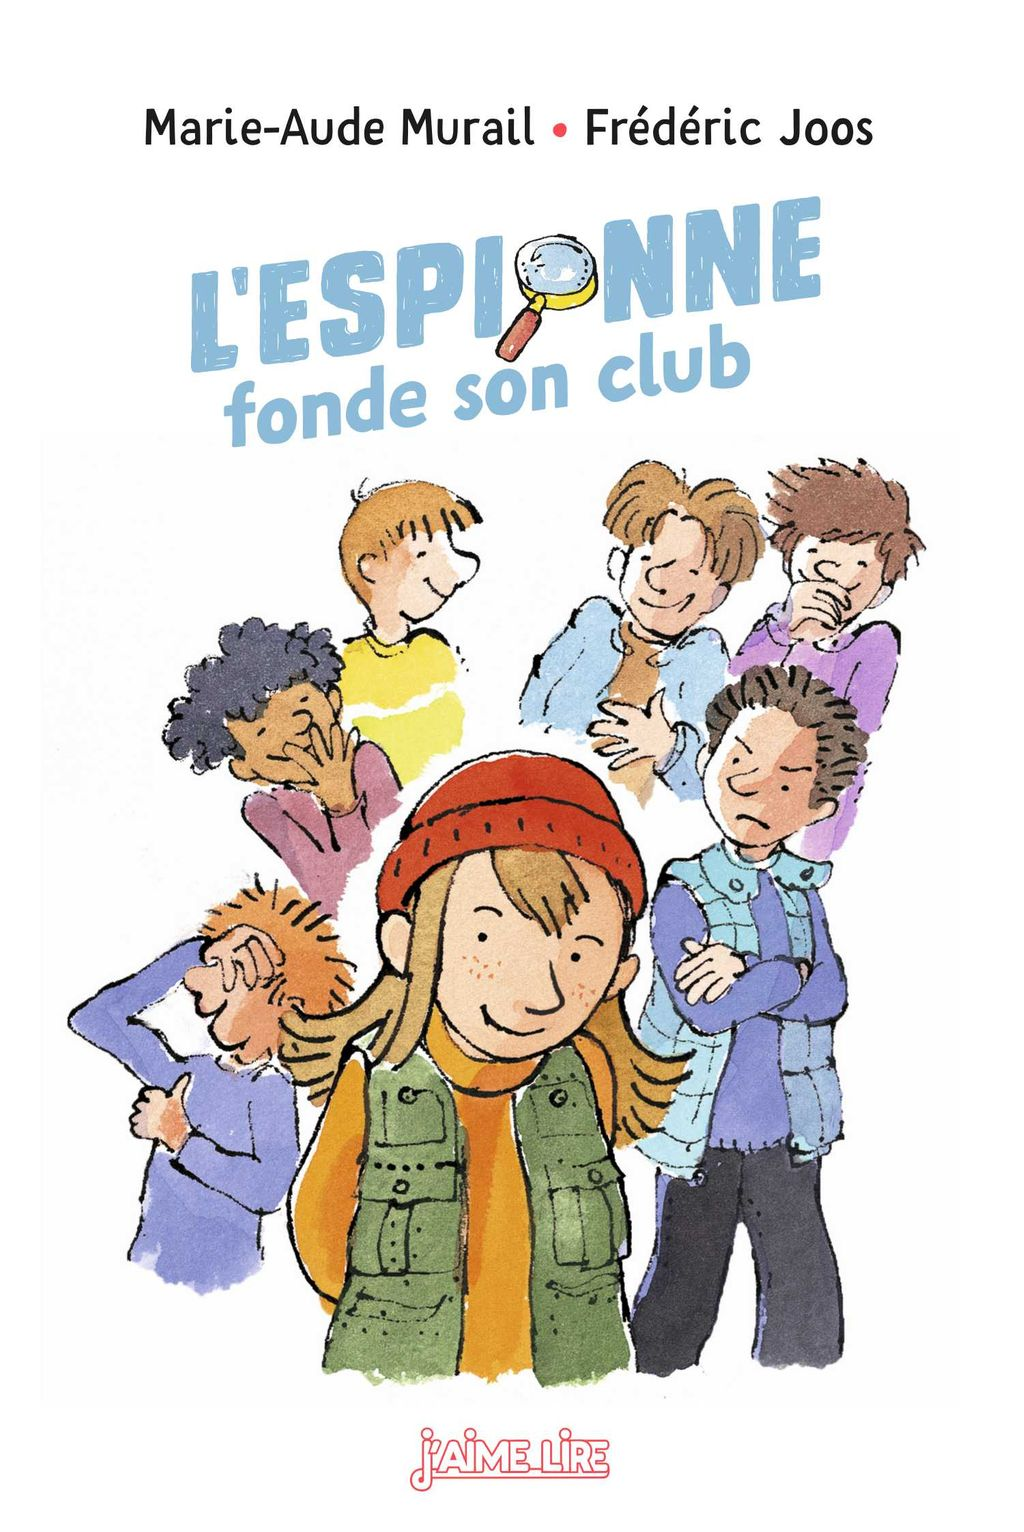 « L'espionne fonde son club » cover